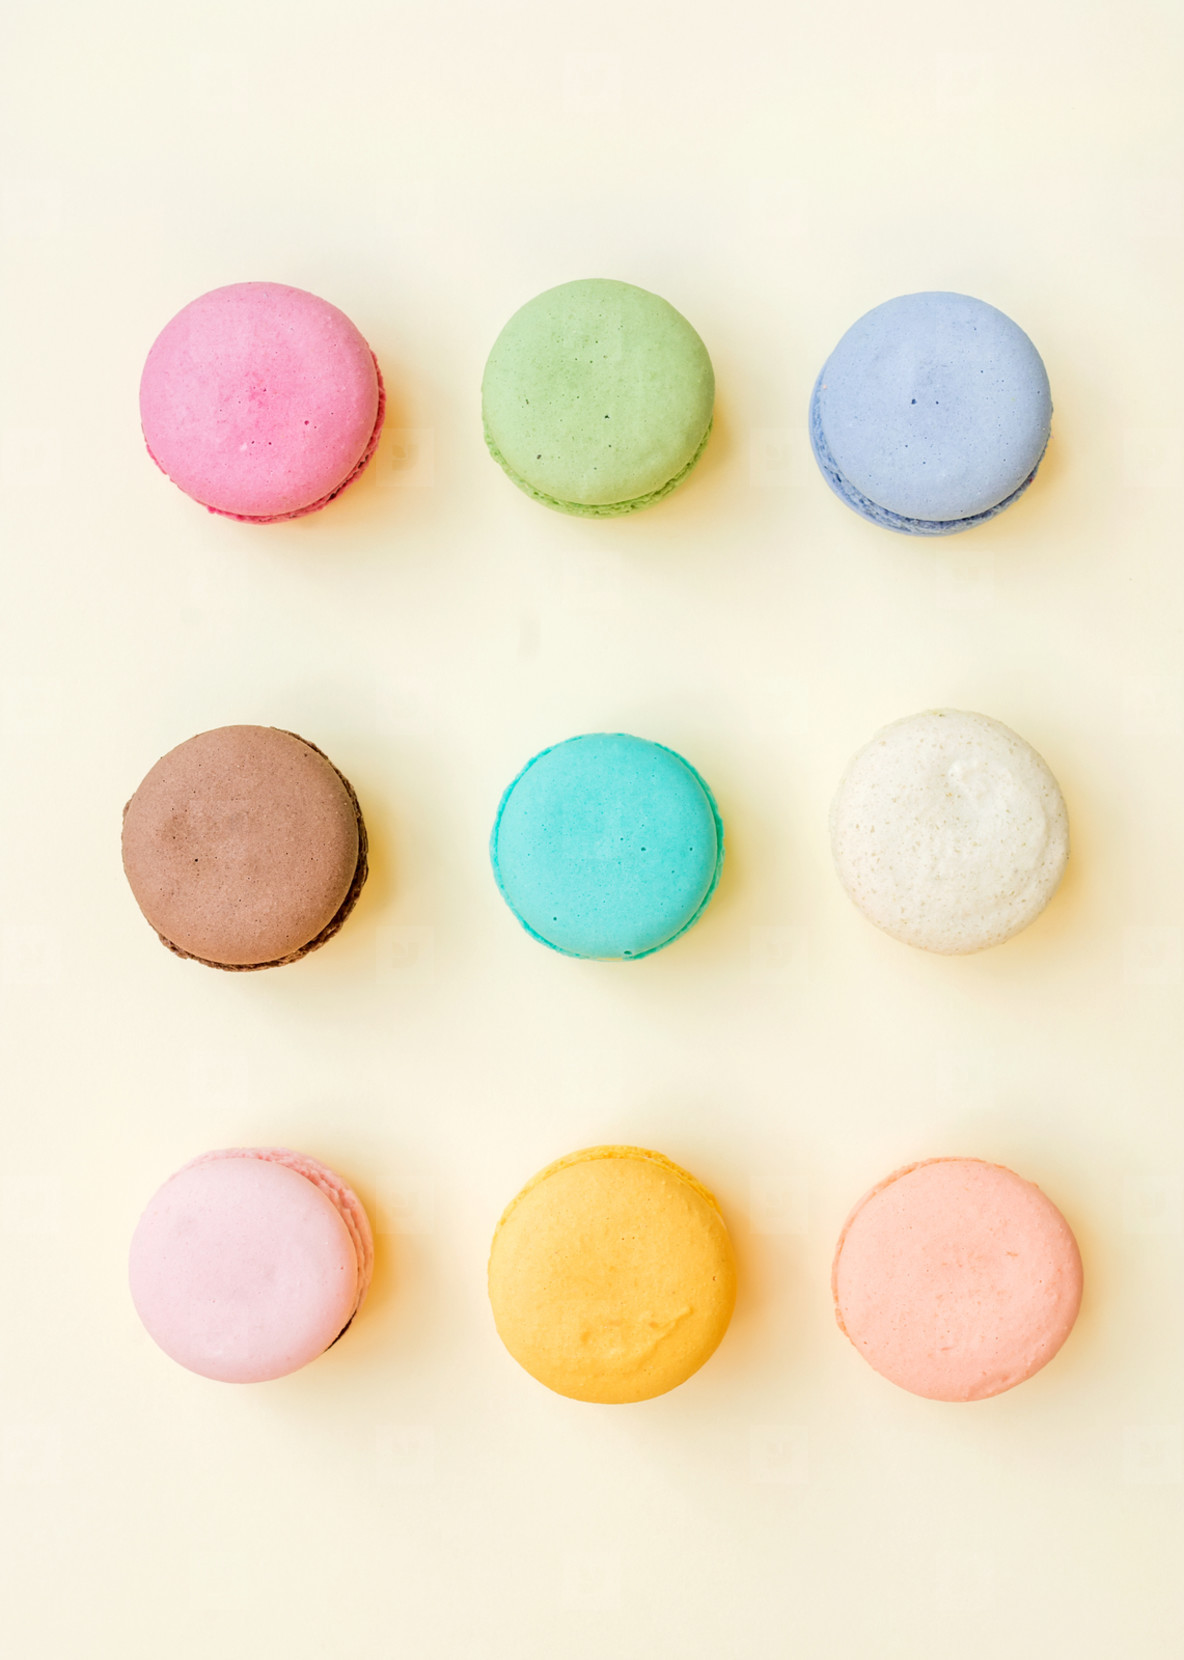 Sweet colorful French macaroon biscuits on pastel yellow background